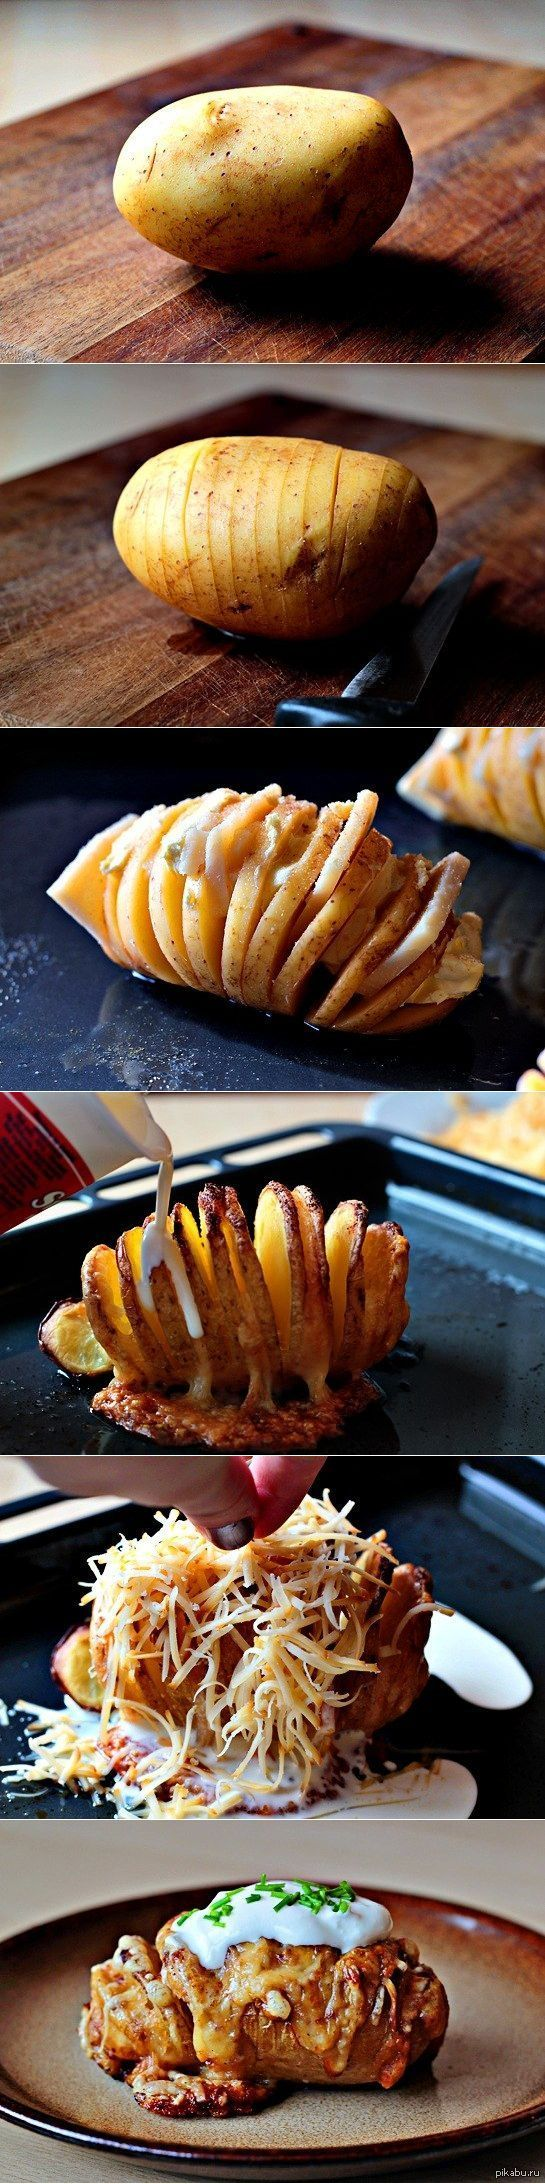 the perfect baked potato...